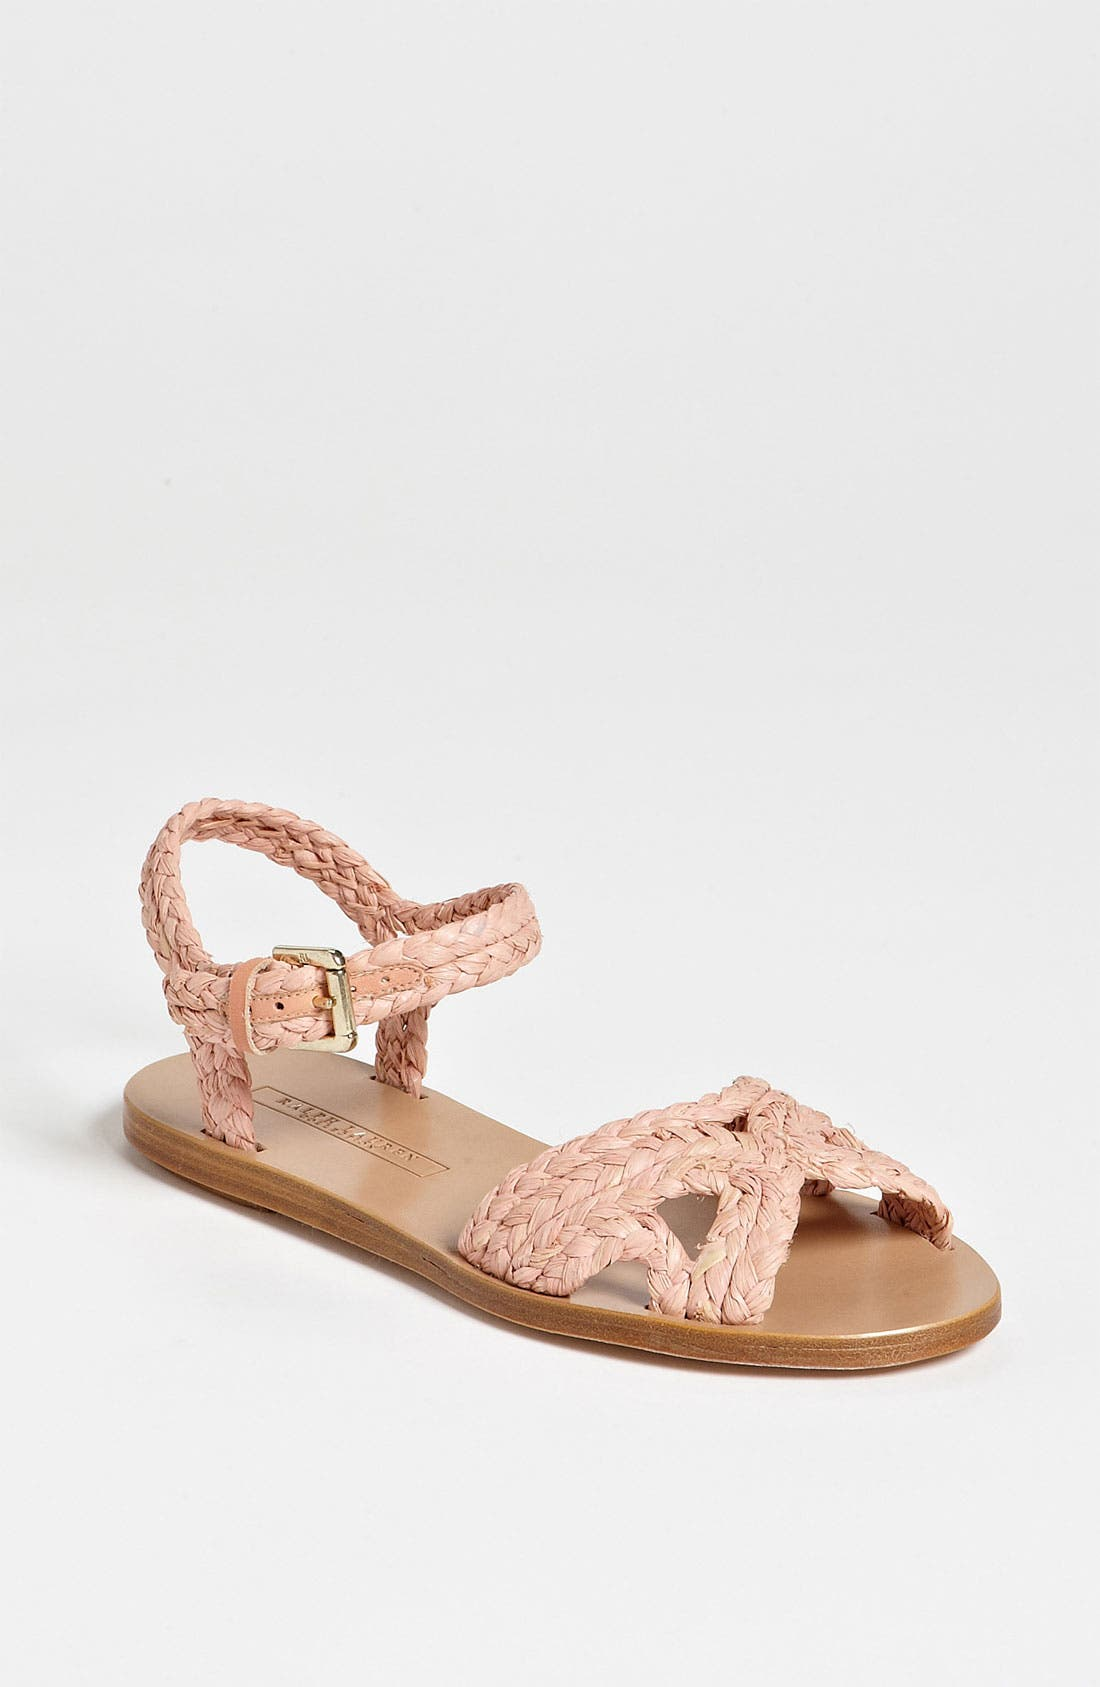 Alternate Image 1 Selected - Ralph Lauren Collection 'Maralyn' Sandal